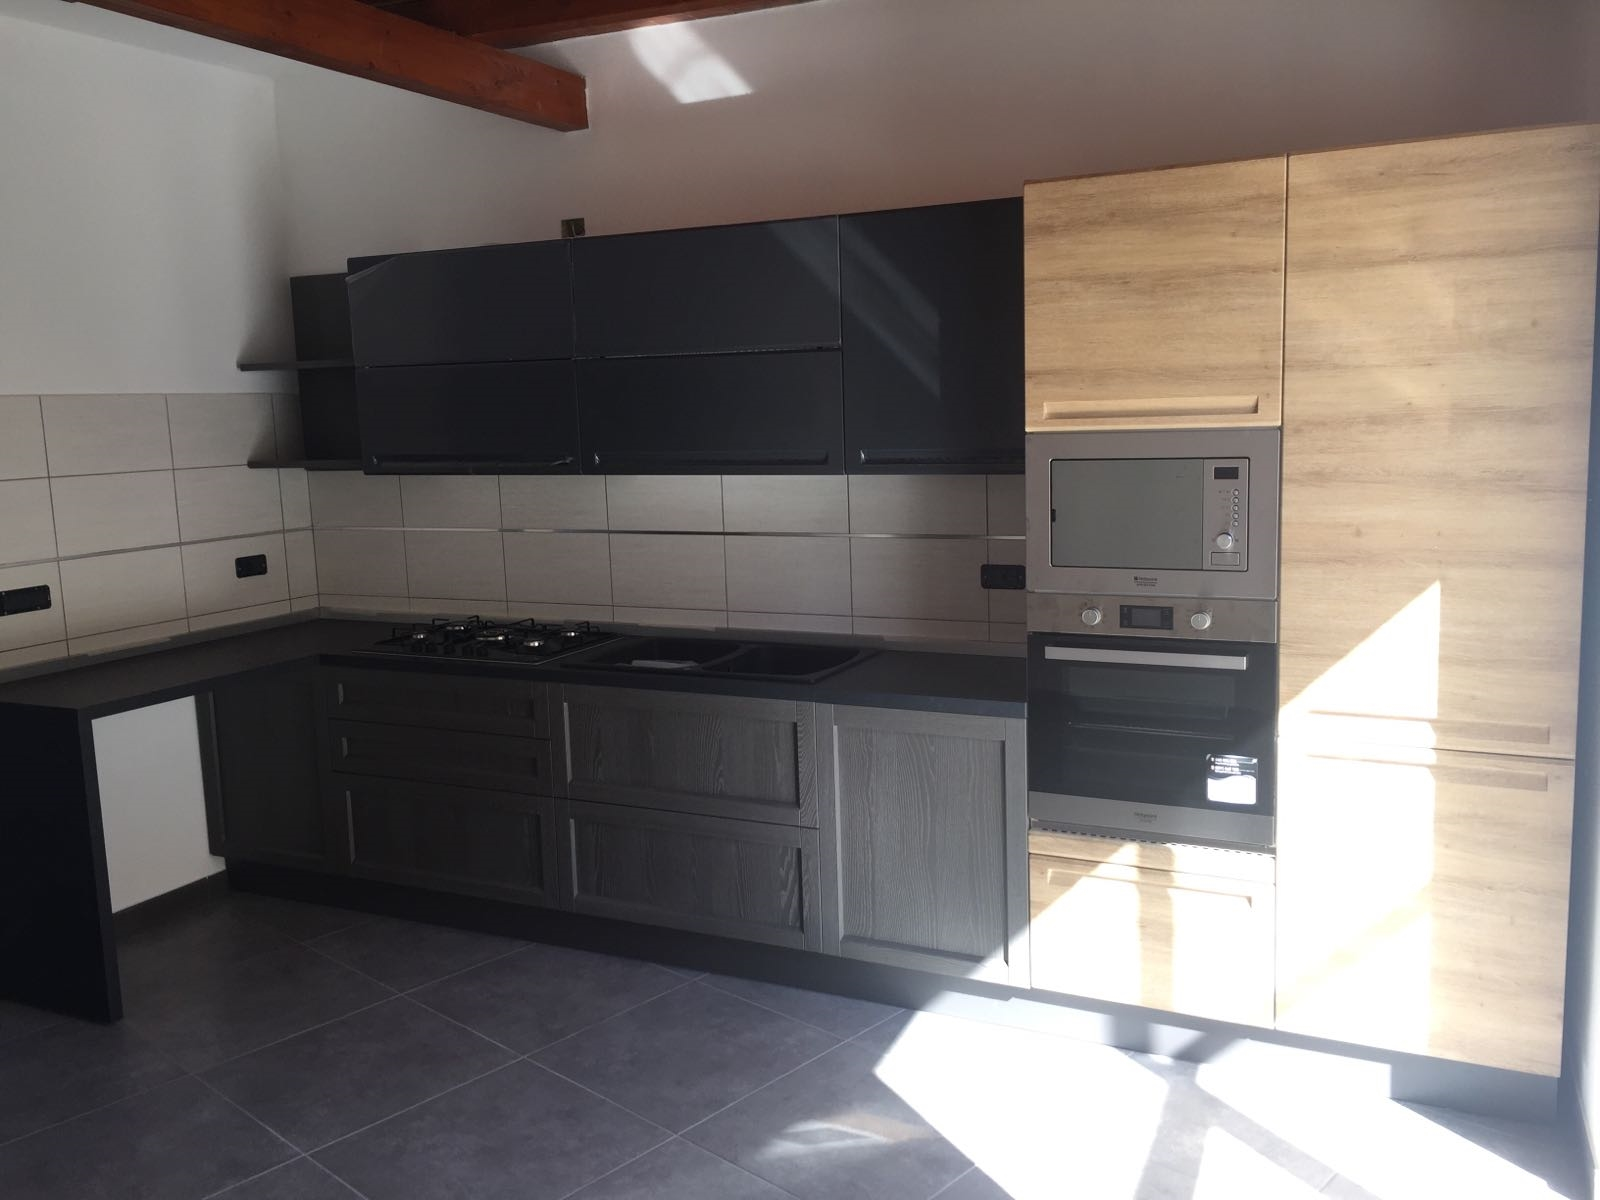 Cucina moderna con piano penisola offerta outlet in for Outlet cucine moderne